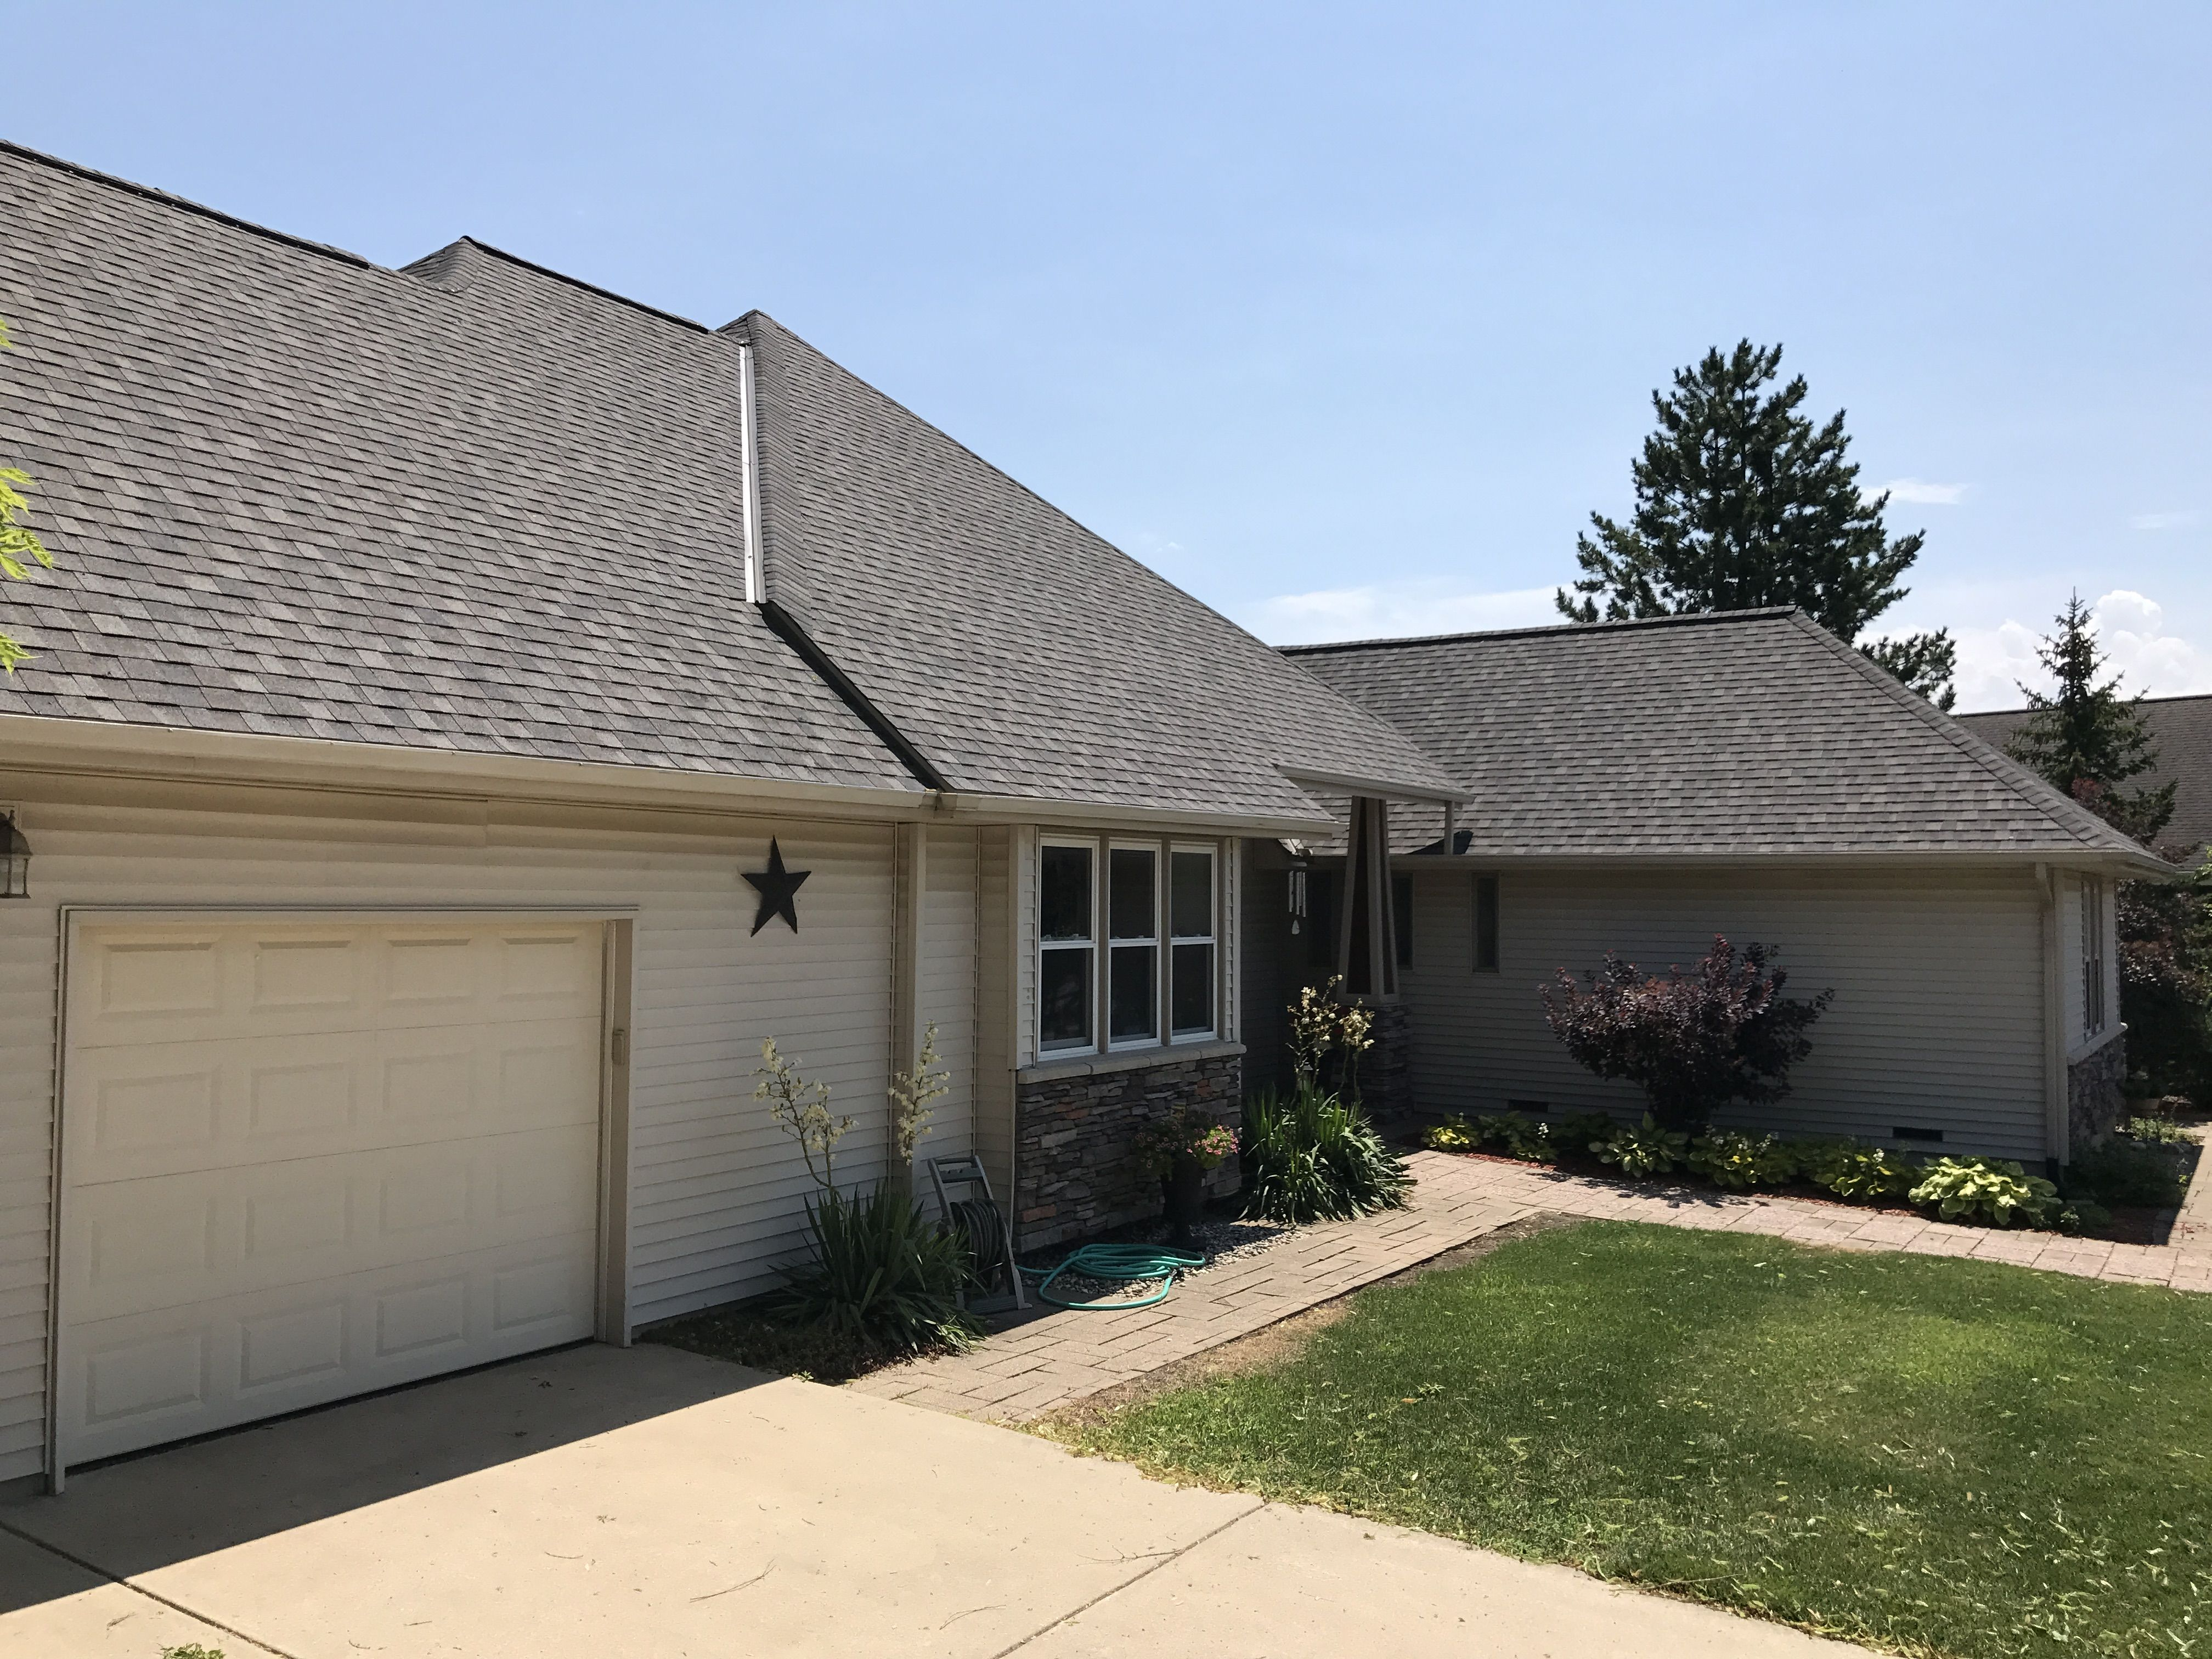 Premier Roofing Exteriors Manufacturer Certainteed Shingle Northgate Color Max Def Driftwood Premierroofin Driftwood Shingles Roofing Window Installation